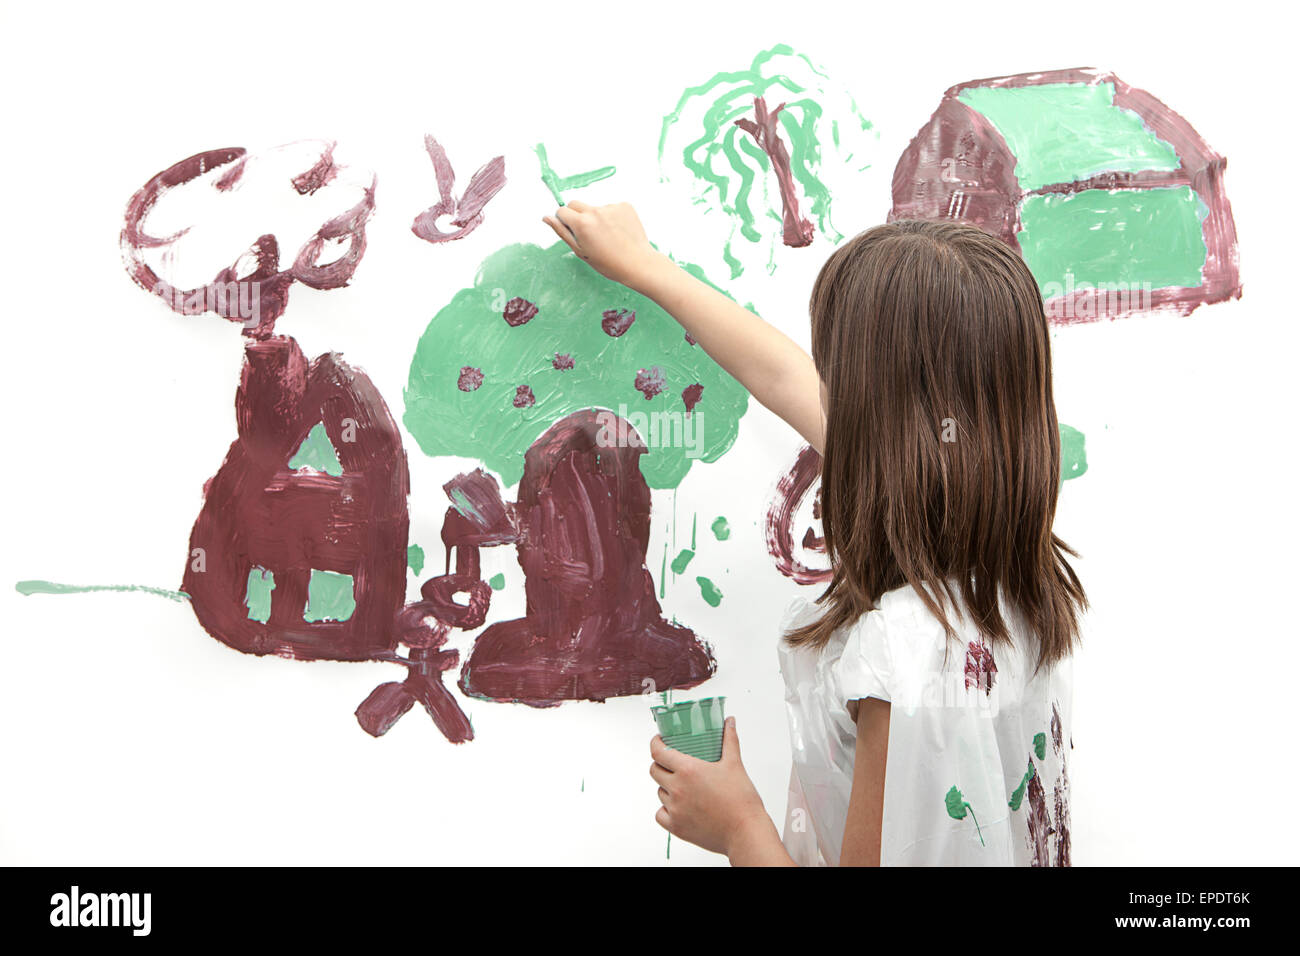 Girl paints a picture. - Stock Image